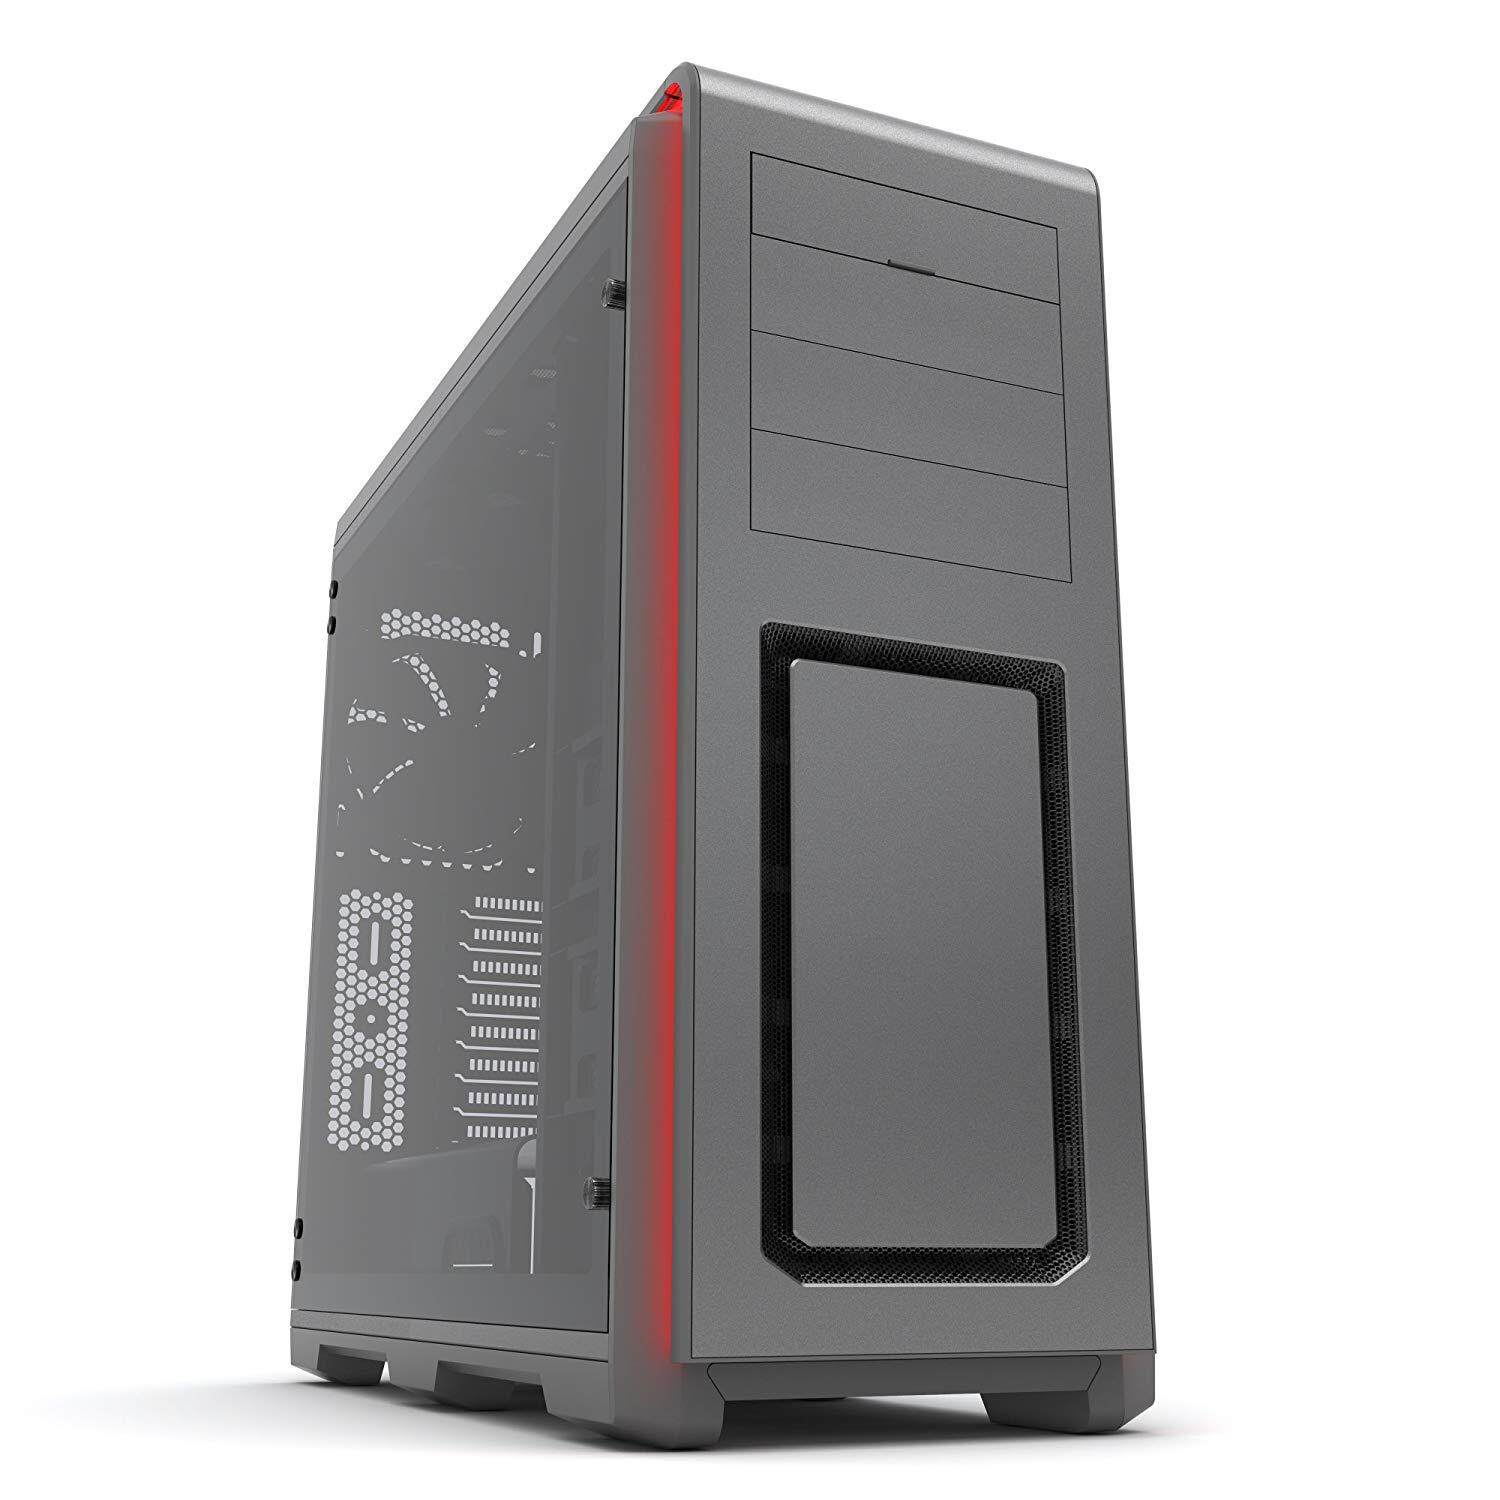 PHANTEKS ENTHOO LUXE TEMPERED GLASS GRAY CHASSIS Malaysia